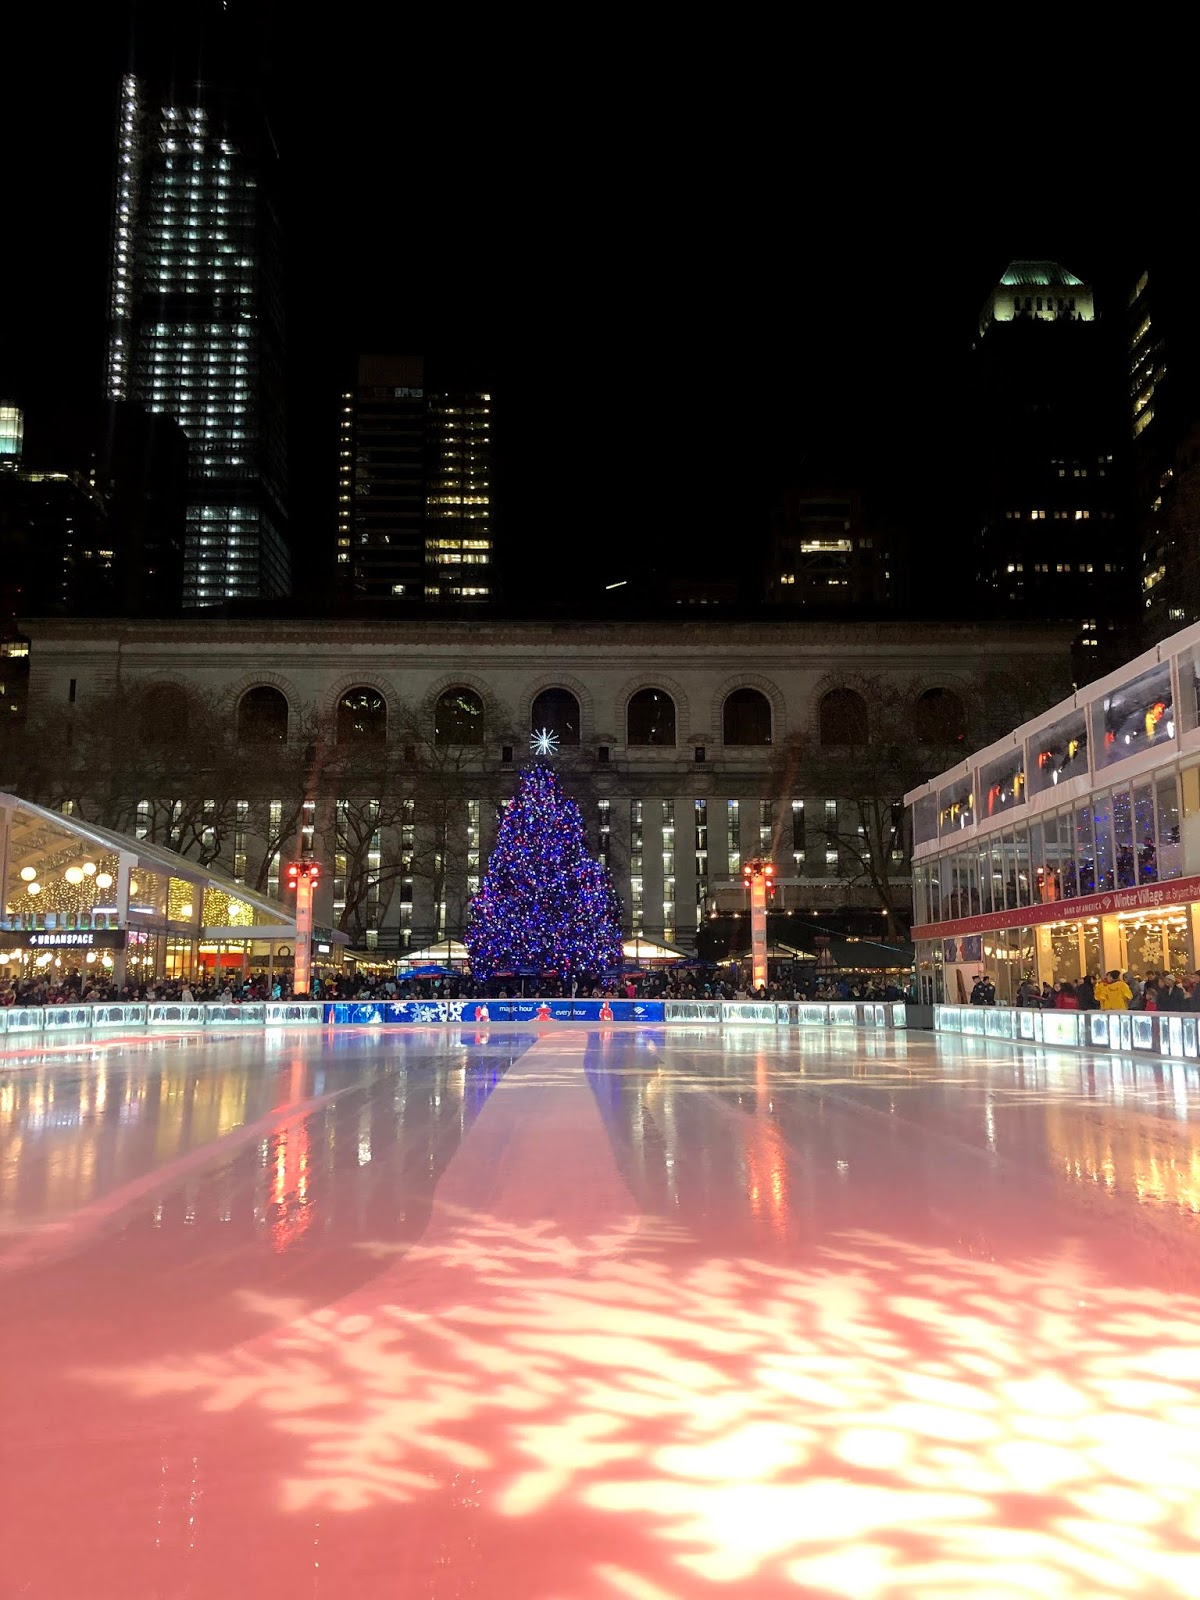 family friendly NYC, kid-friendly things to do in NYC in the winter, ice skating NYC, new York aquarium, Coney Island with kids, Central Park zoo, Brookfield Place for toddlers, what to do in NYC with your family, winter time activities for NYC, Bryant Park winter village, Bryant Park ice skating with kids, what do to in NYC, best winter activities in NYC, free winter activities for kids in nyc